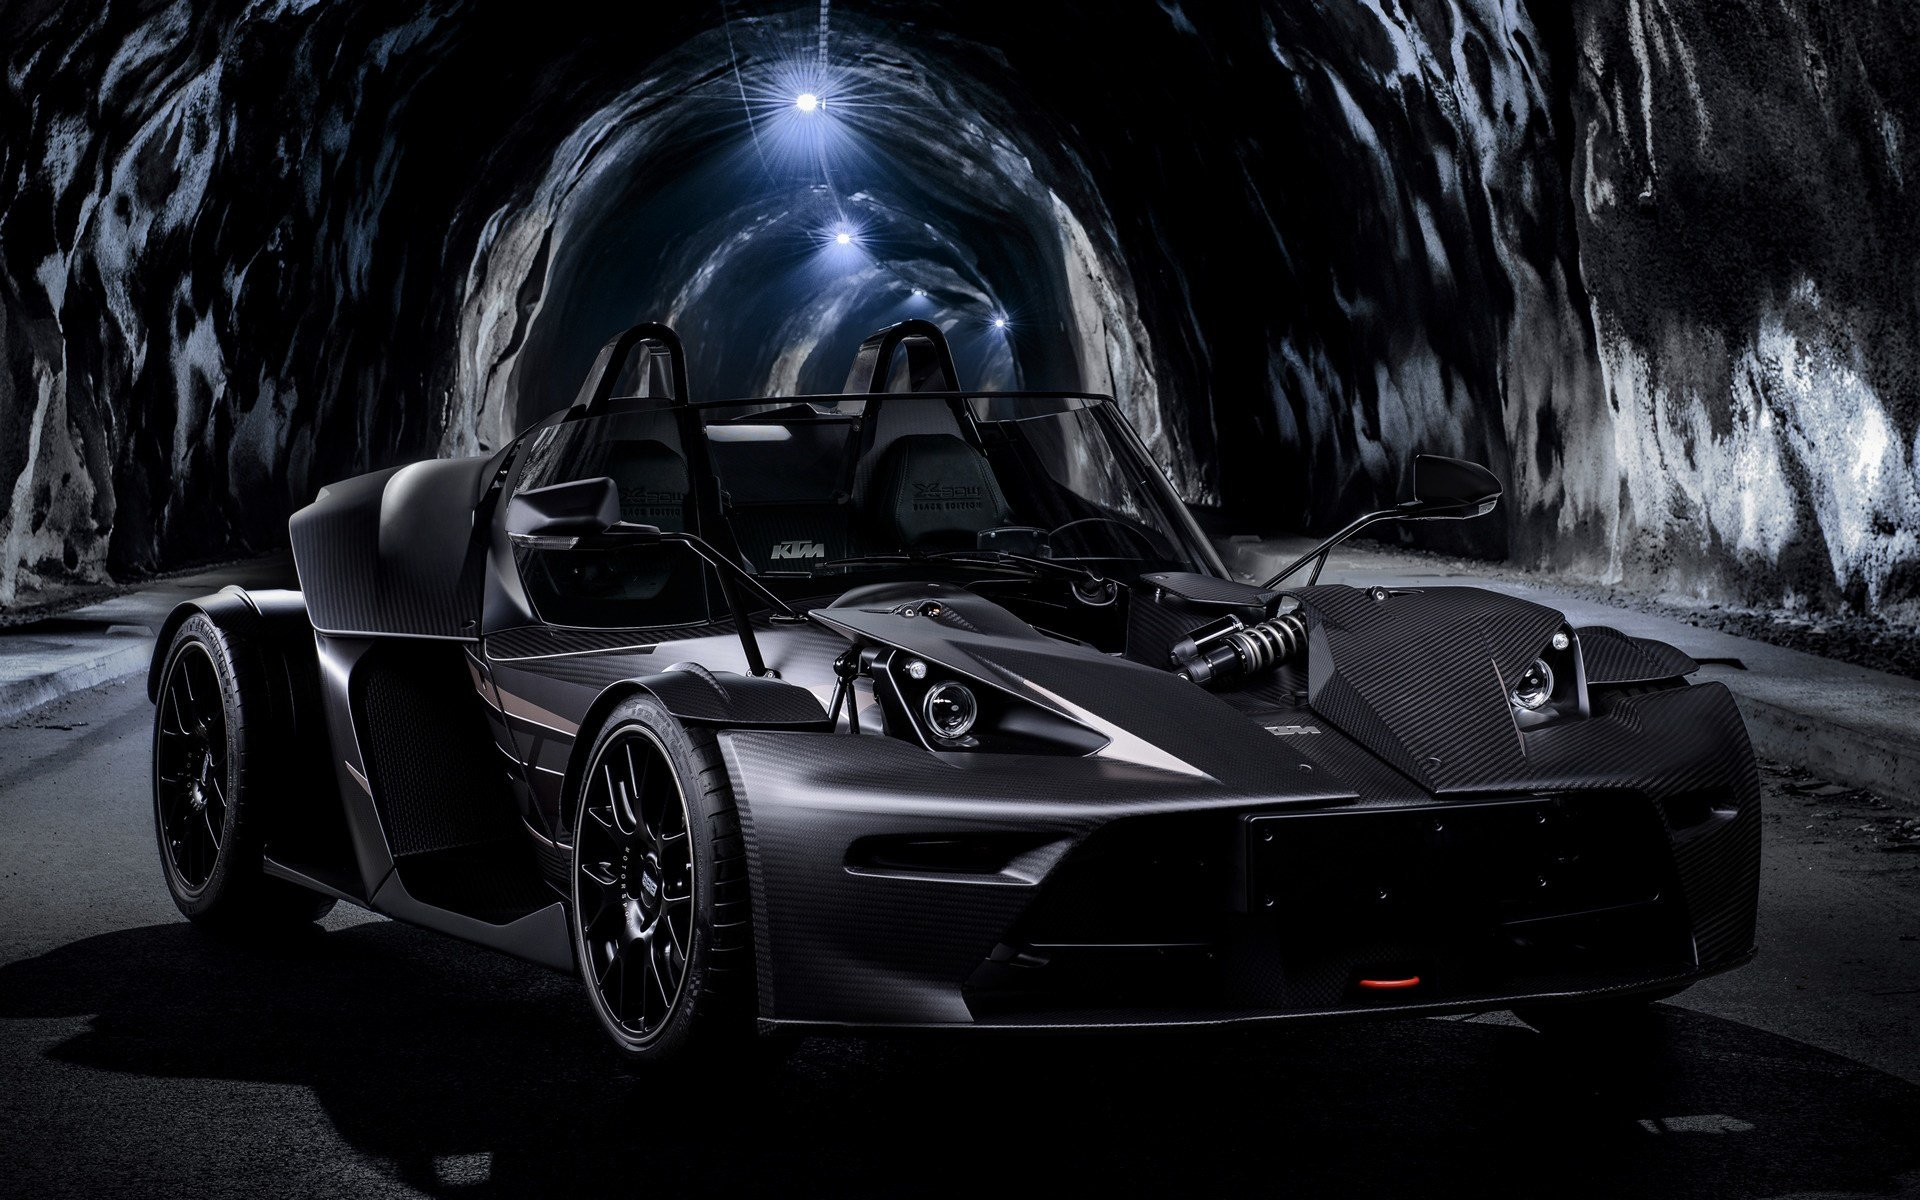 Latest Ktm X Bow Gt Black Edition 2016 Wallpapers And Hd Images Free Download